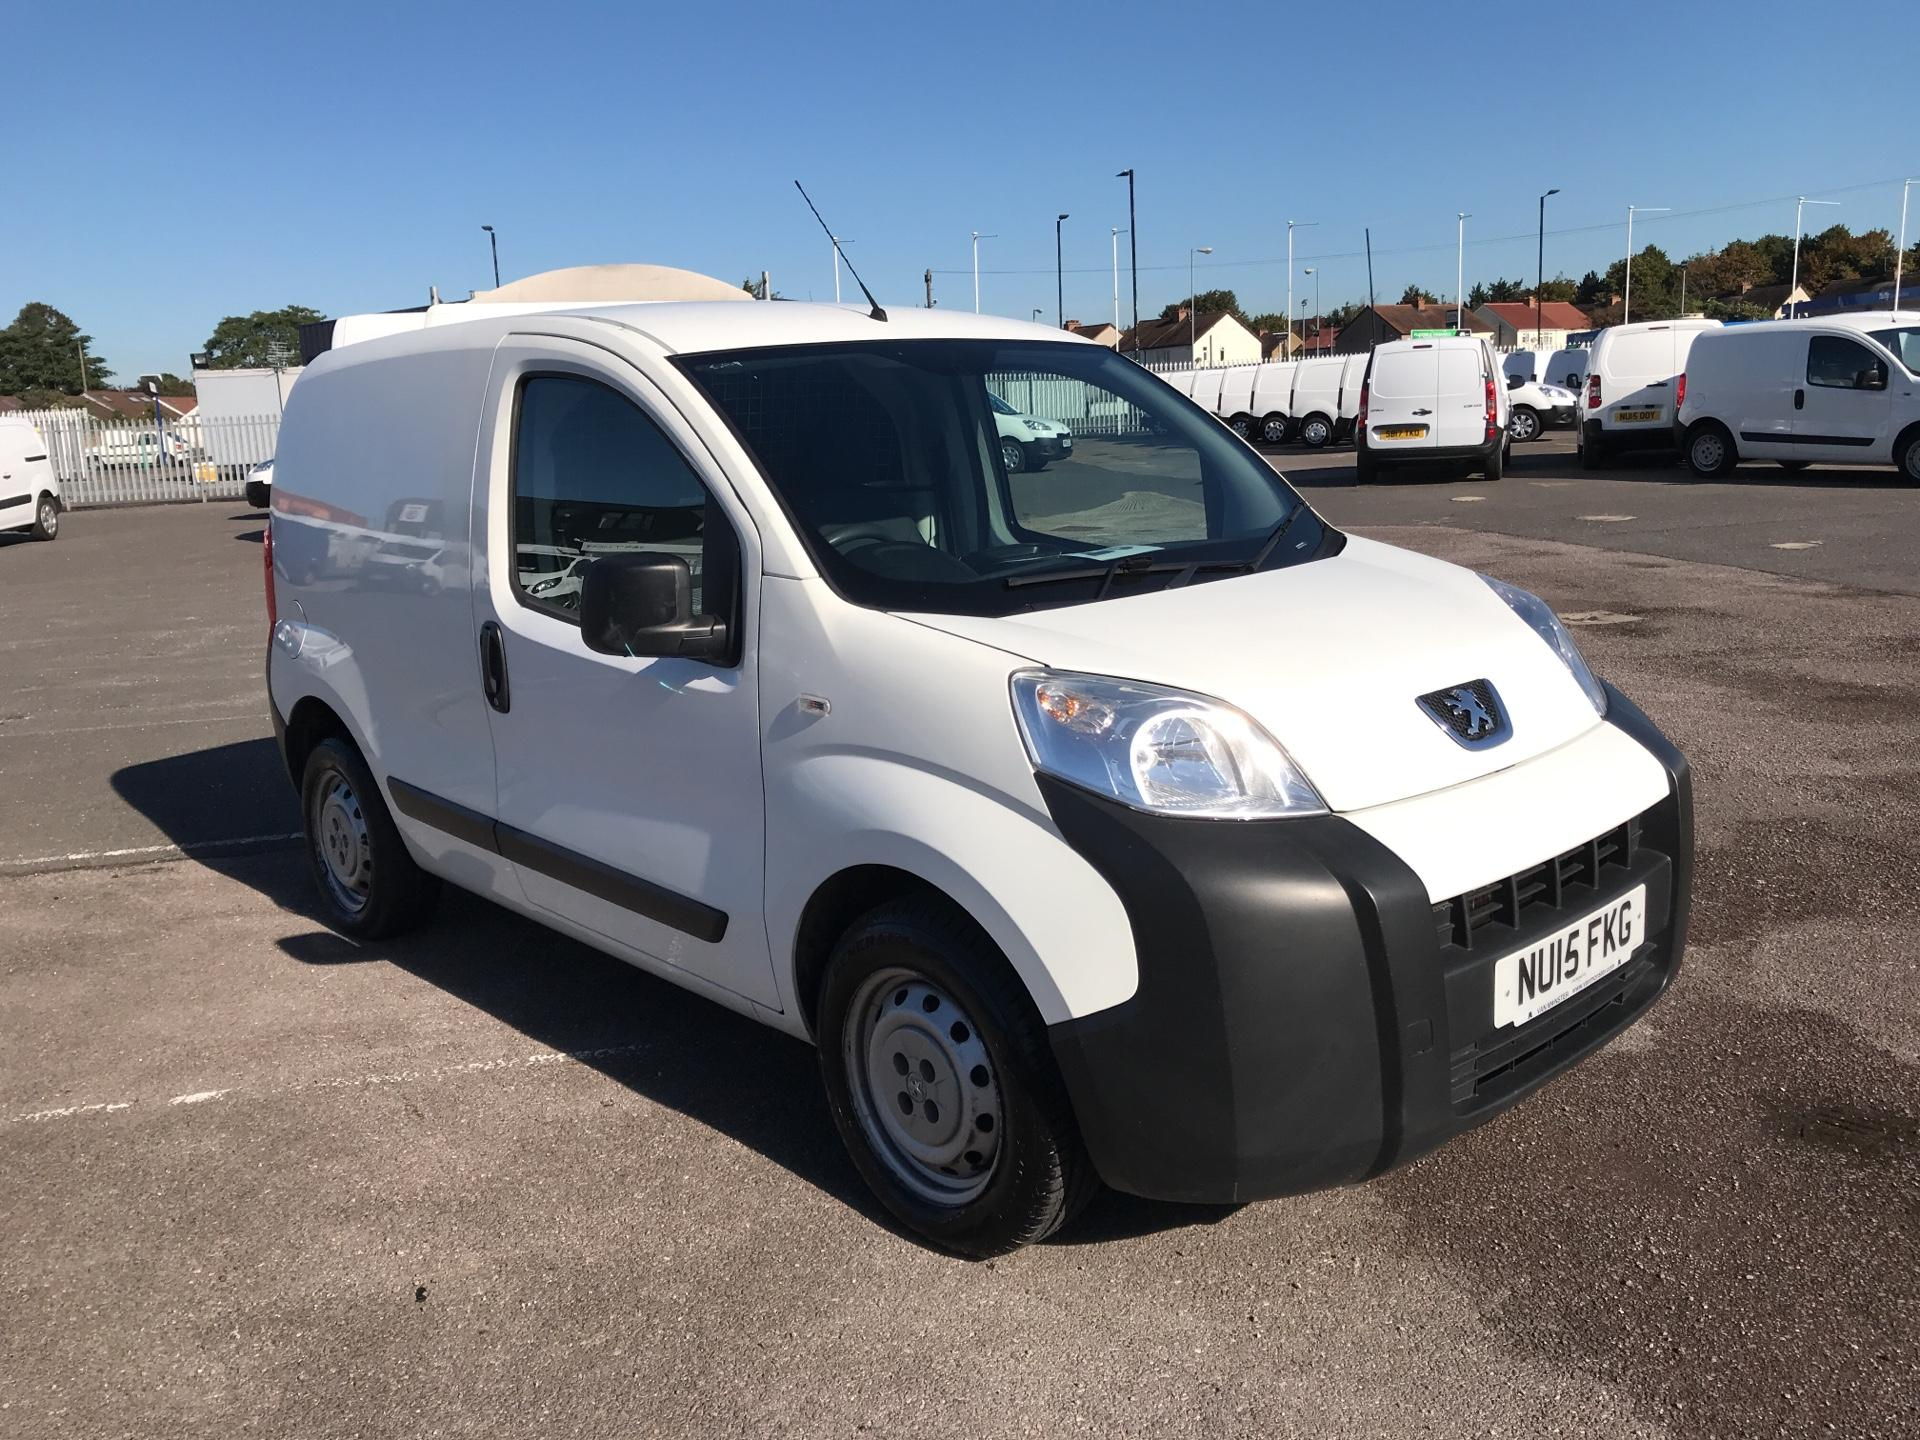 2015 Peugeot Bipper 1.3 Hdi 75 S Plus Pack [Sld]* VALUE RANGE VEHICLE CONDITION REFLECTED IN PRICE* (NU15FKG)